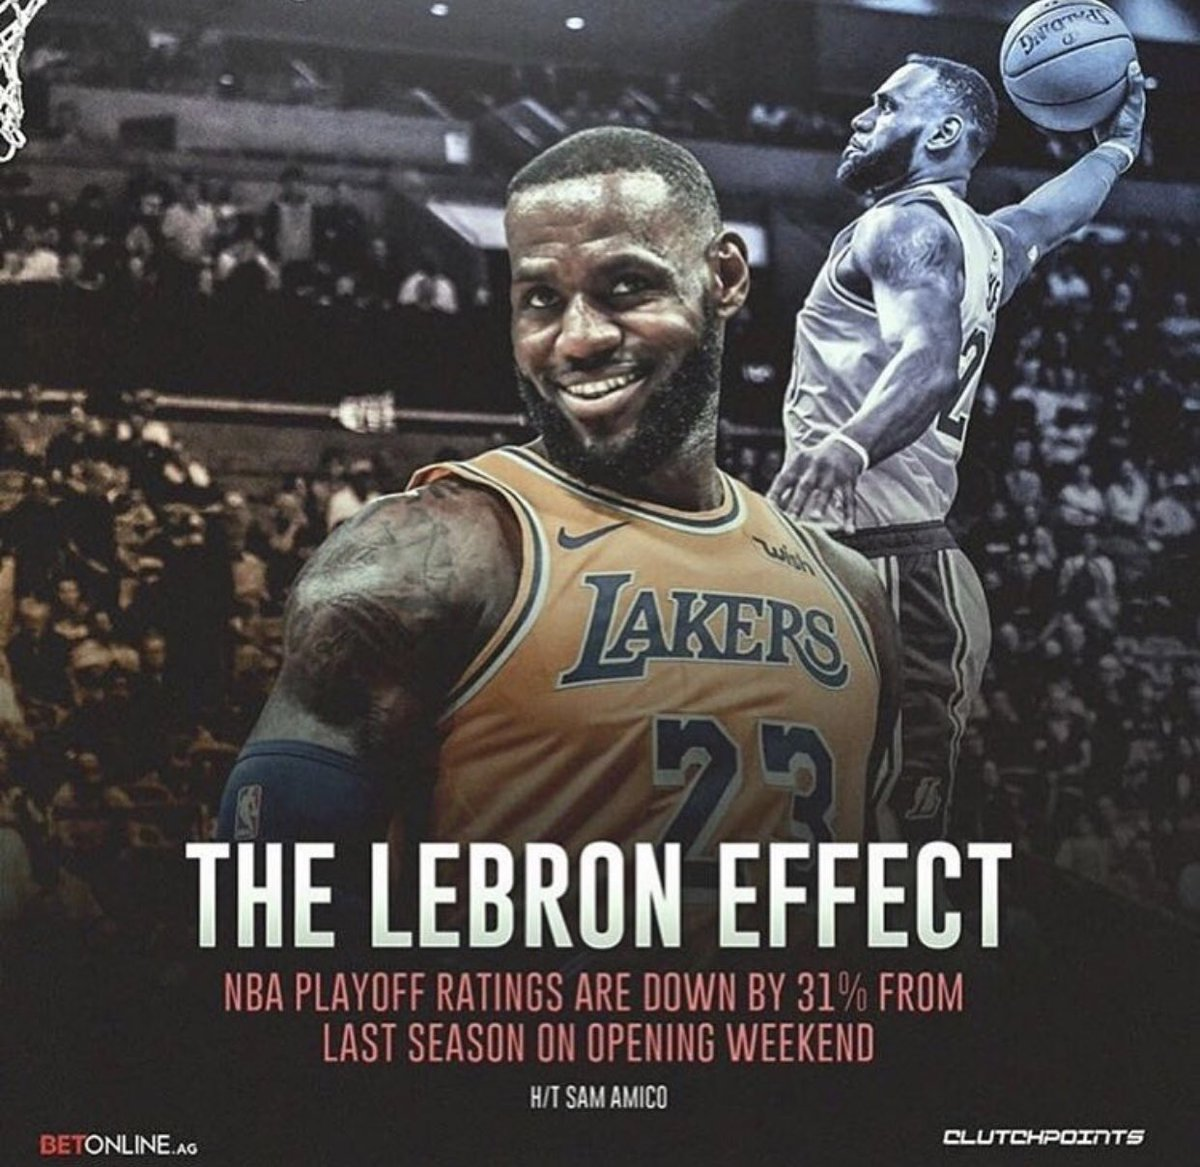 """""""The Lebron Effect"""" lmao 🙈🙈🙈 Fortnite gets better ratings than the #NBA without the #Goat #LebronJames #Fortnite #NBAPlayoffs #Ratings @KingJames #Basketball #KingJames"""